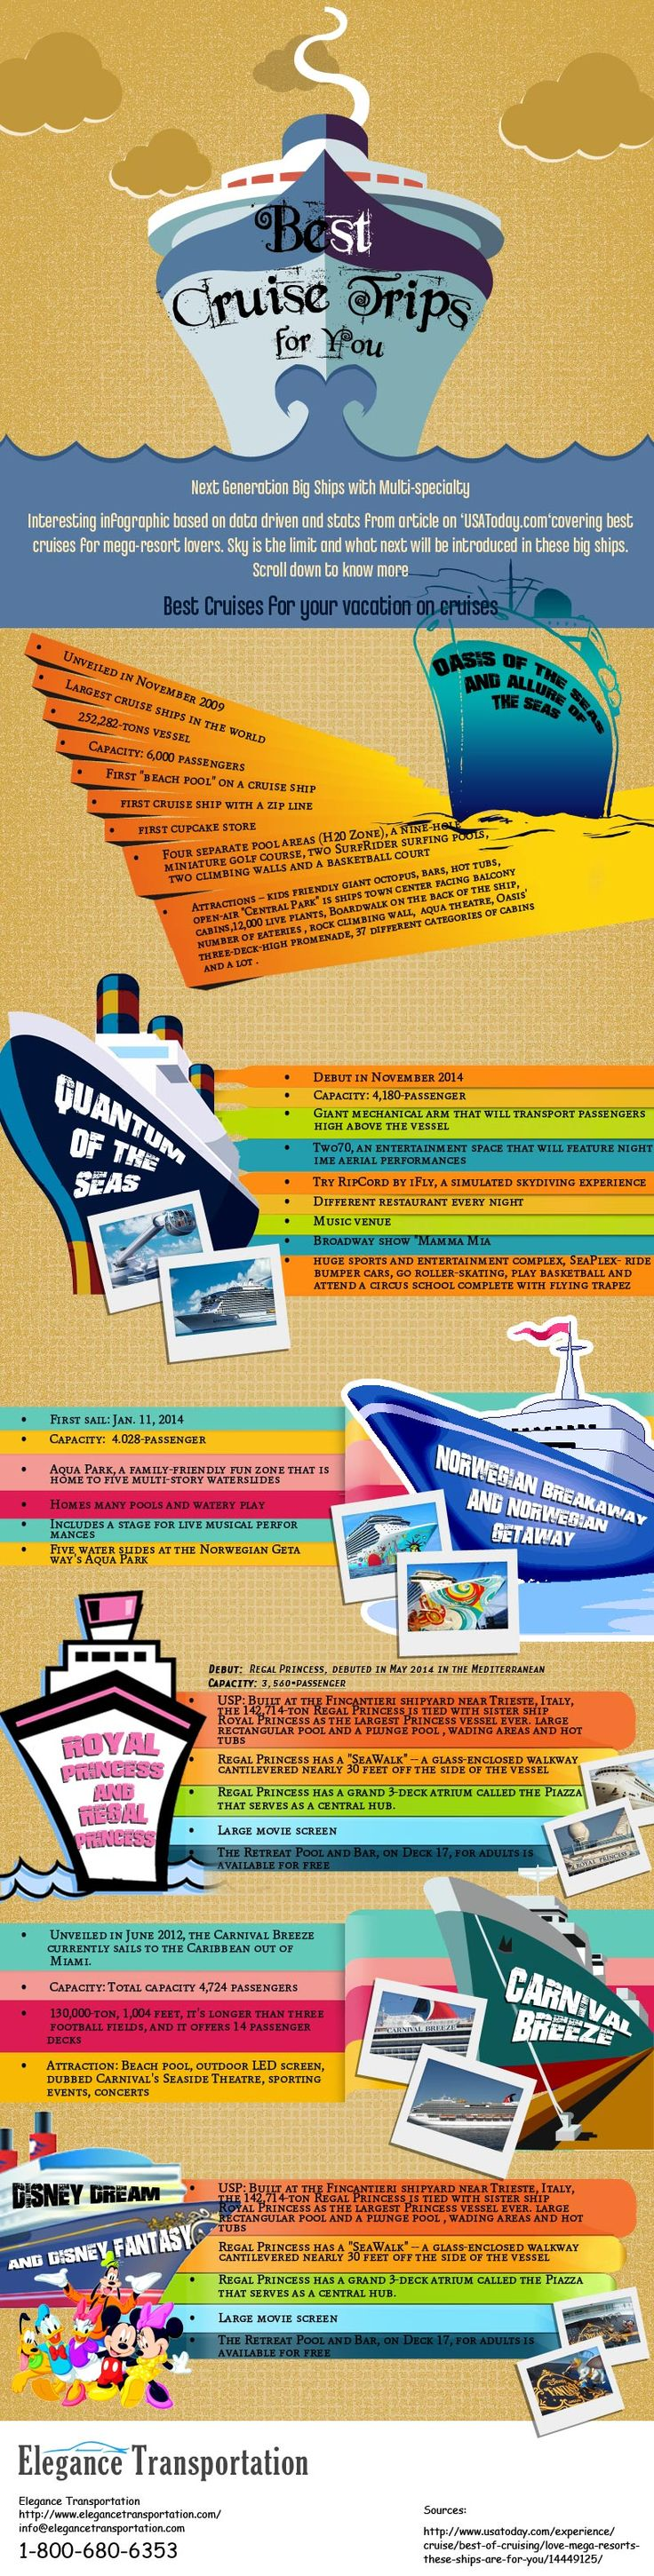 For the cruise terminal transportation book online a limo. The infograph is about best cruises in World